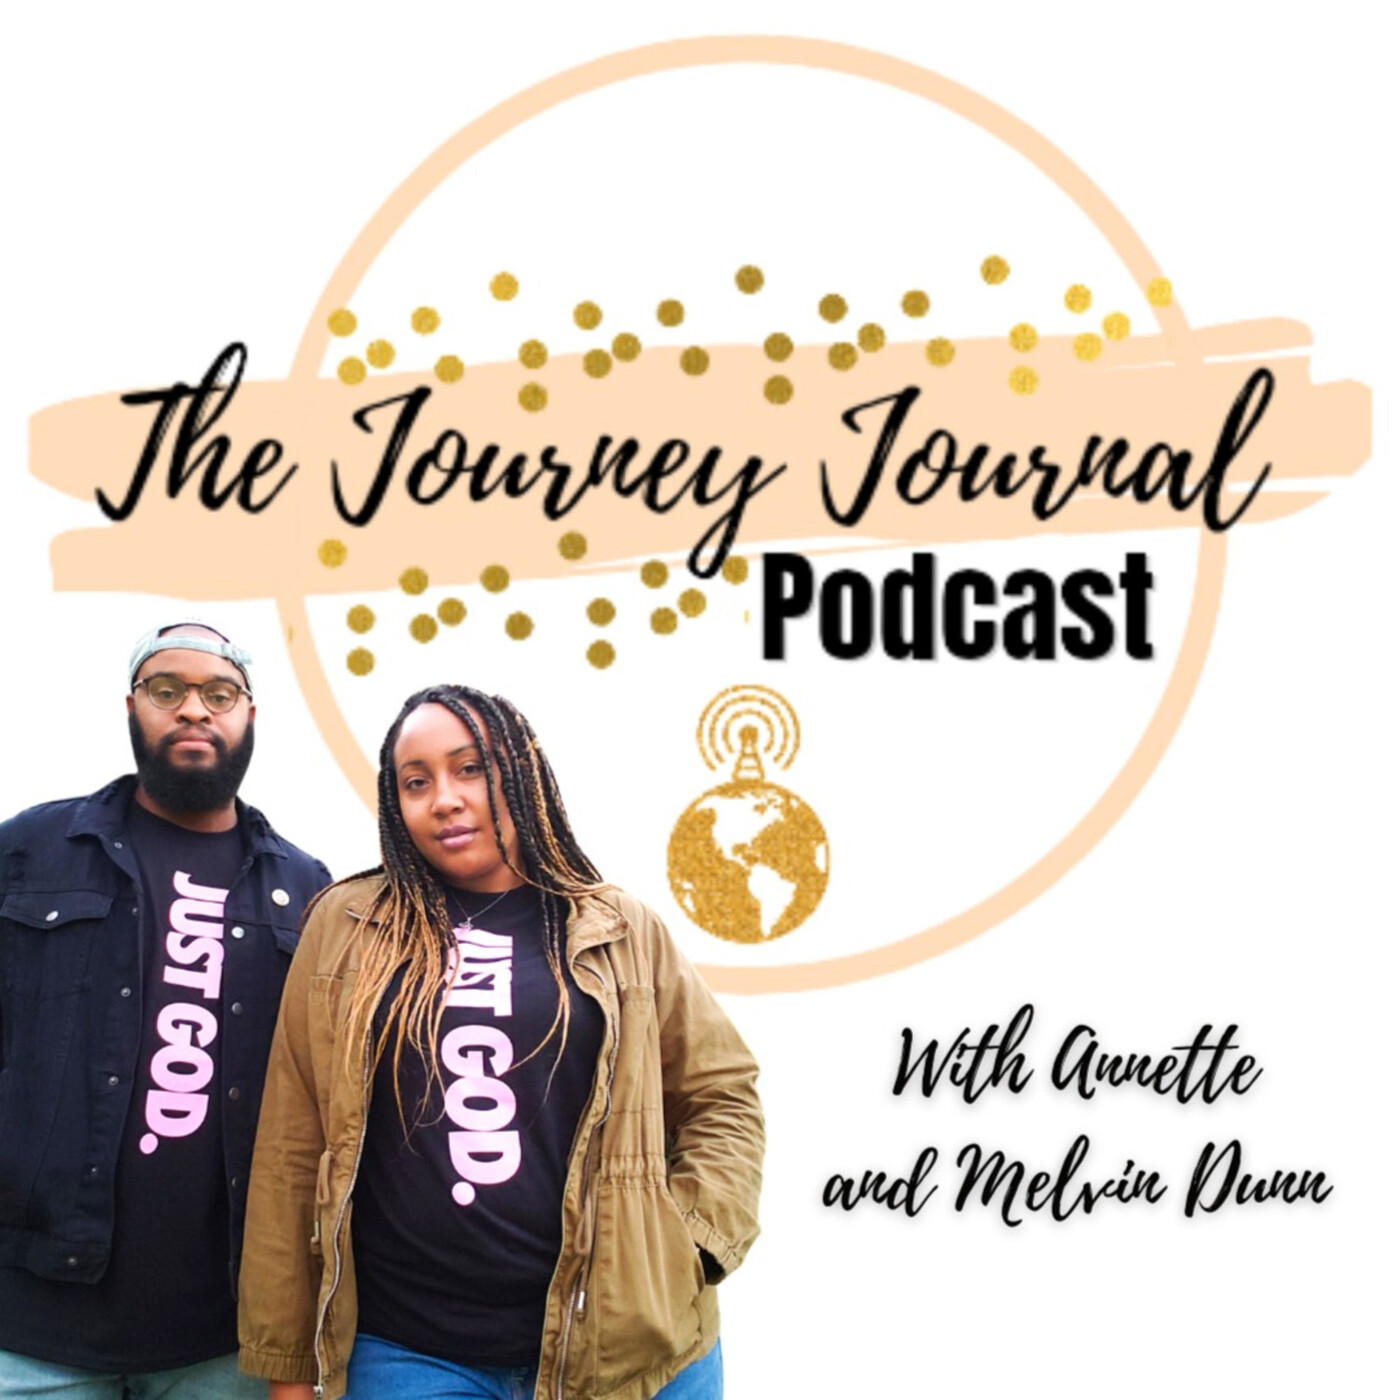 The Journey Journal Podcast (Trailer)